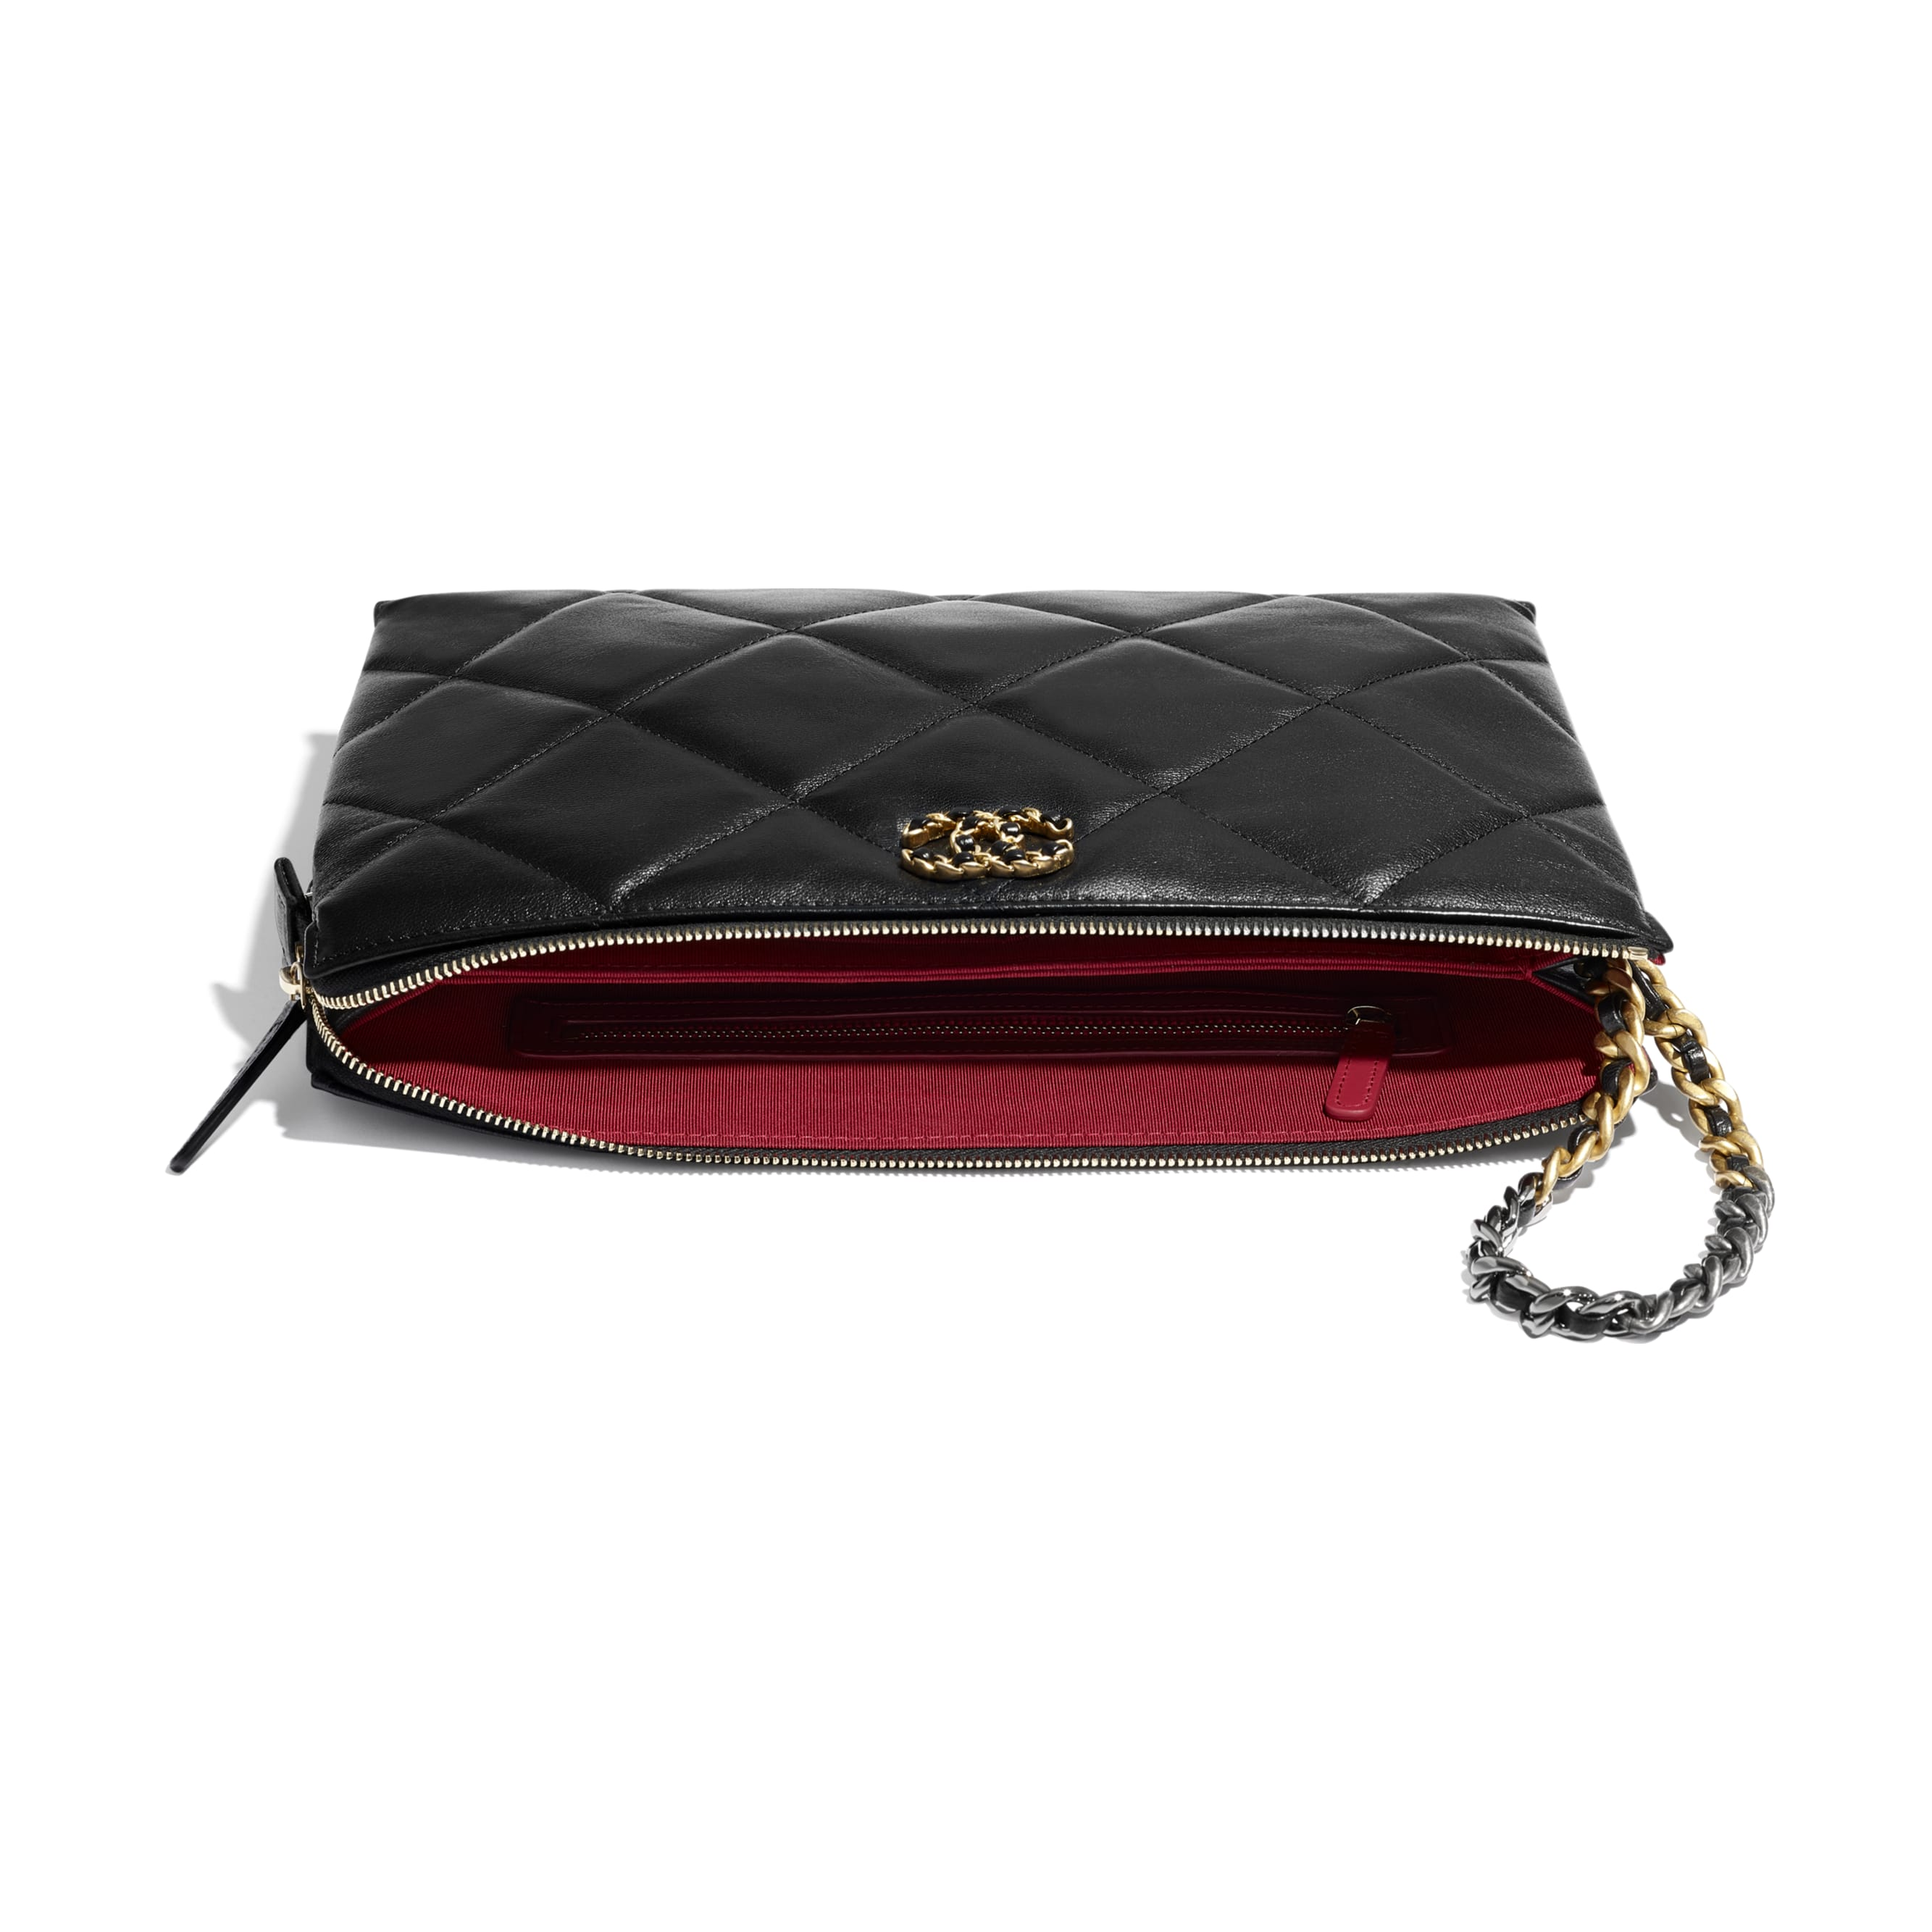 CHANEL 19 Pouch with Handle - Black - Shiny Goatskin, Gold-Tone, Silver-Tone & Ruthenium-Finish Metal - CHANEL - Extra view - see standard sized version